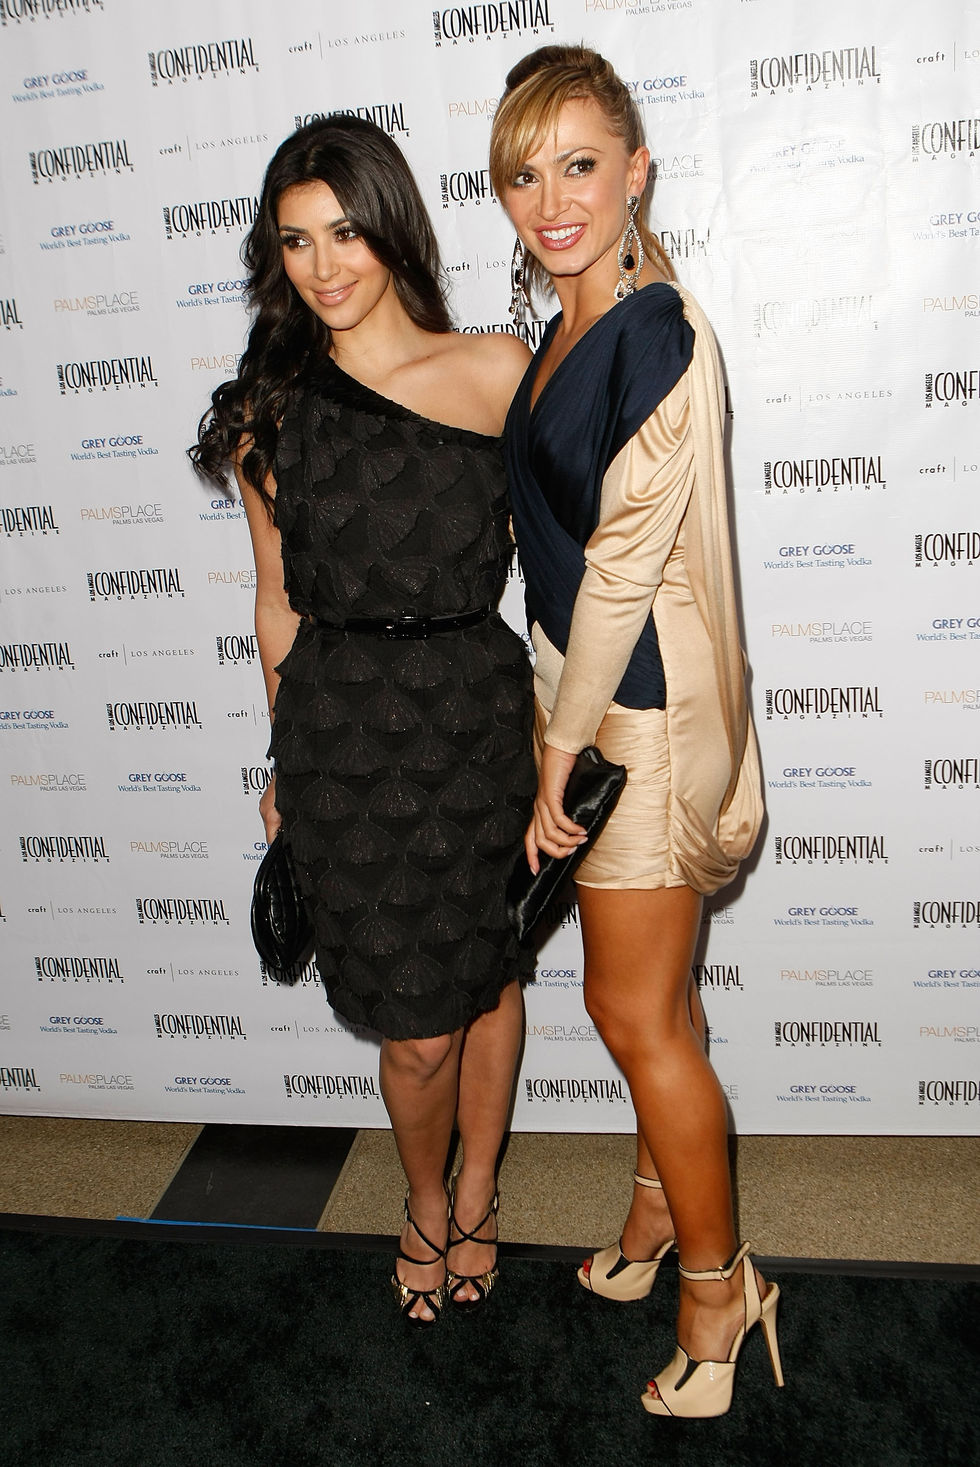 kim-kardashian-los-angeles-confidential-mens-issue-launch-party-in-los-angeles-01